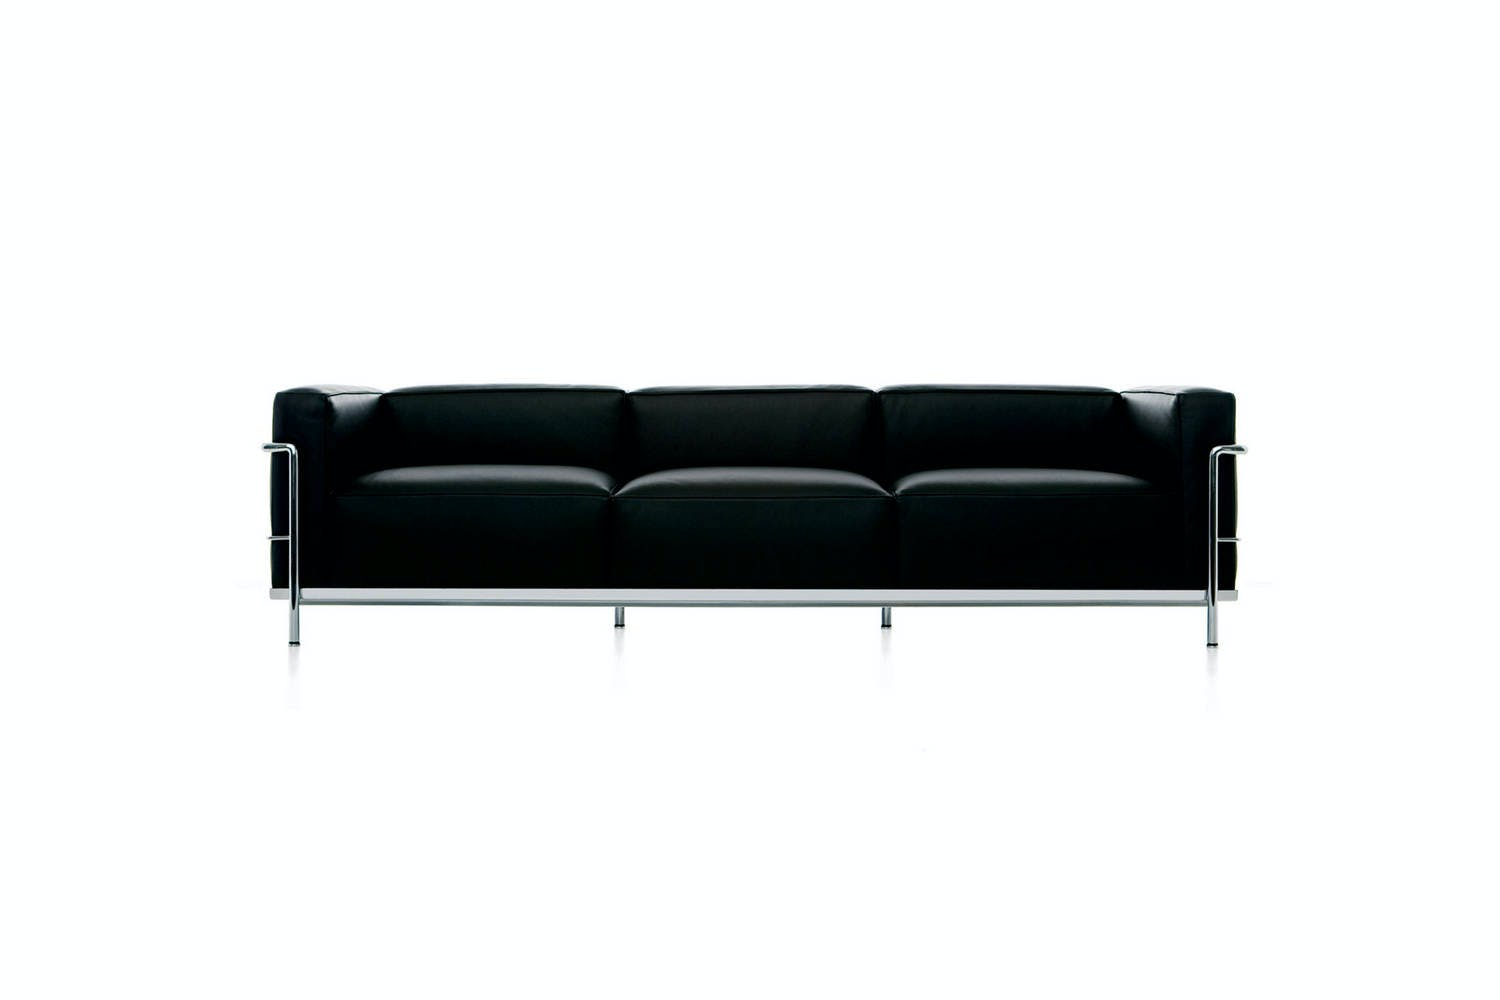 Lc3 sofa by le corbusier pierre jeanneret charlotte for Le corbusier sofa nachbau